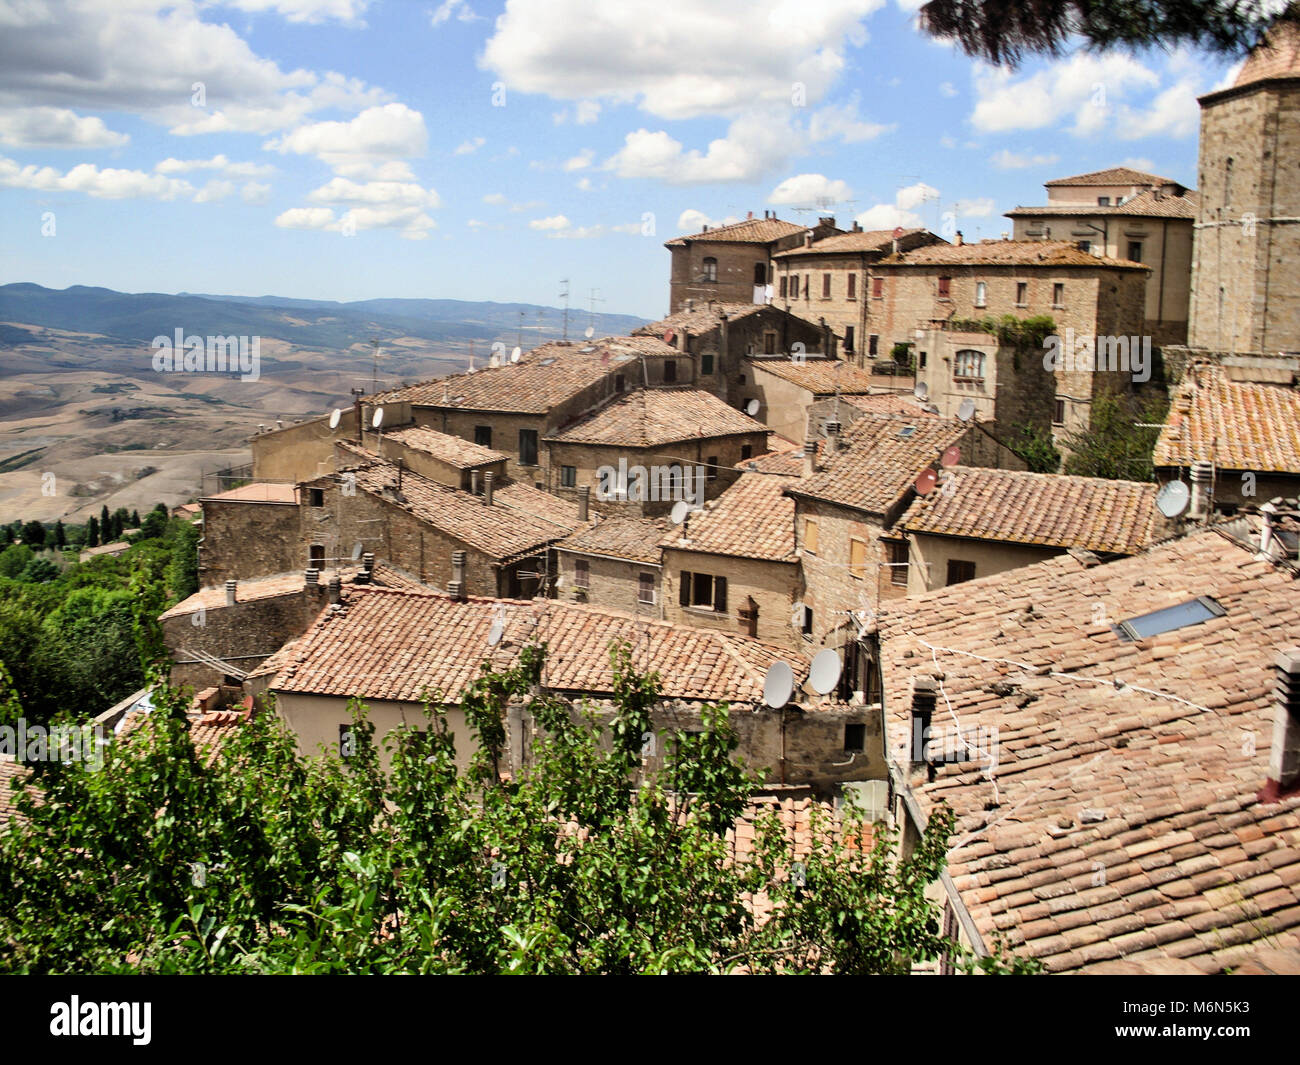 A view of Volterra - Stock Image